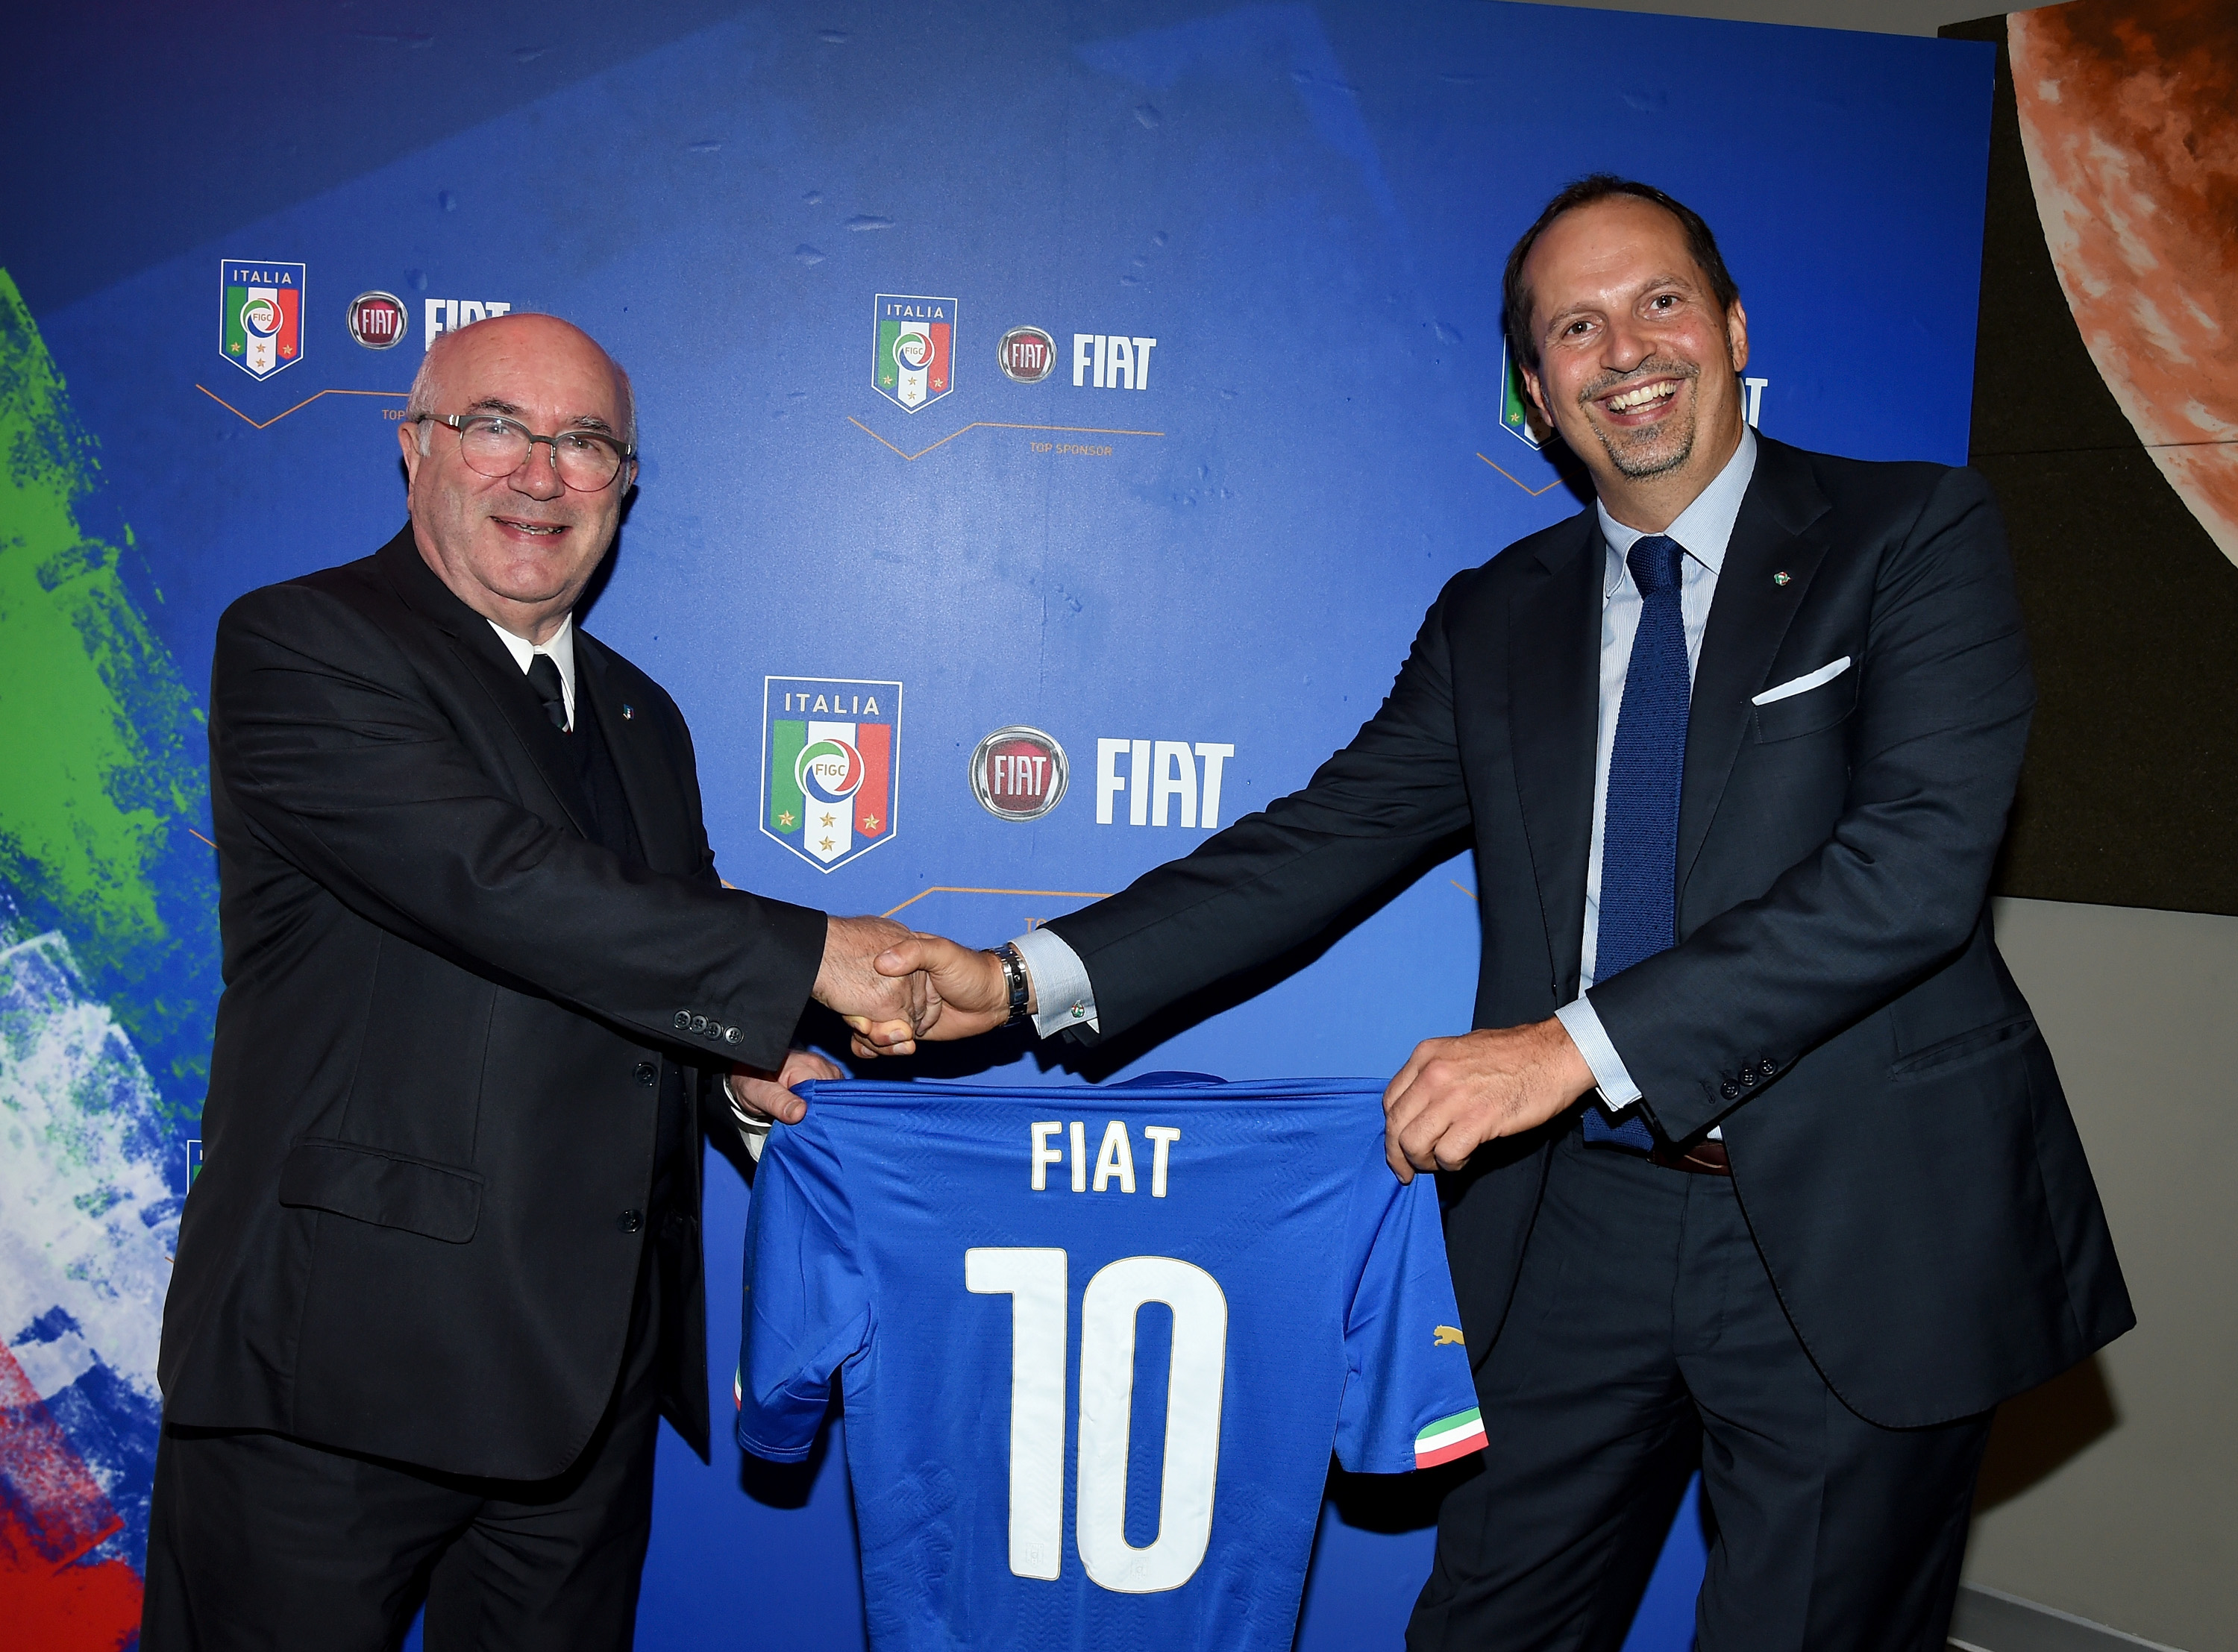 ROME, ITALY - OCTOBER 13: FIAT FIGC on October 13, 2015 in Rome, Italy. (Photo by Claudio Villa/Getty Images)